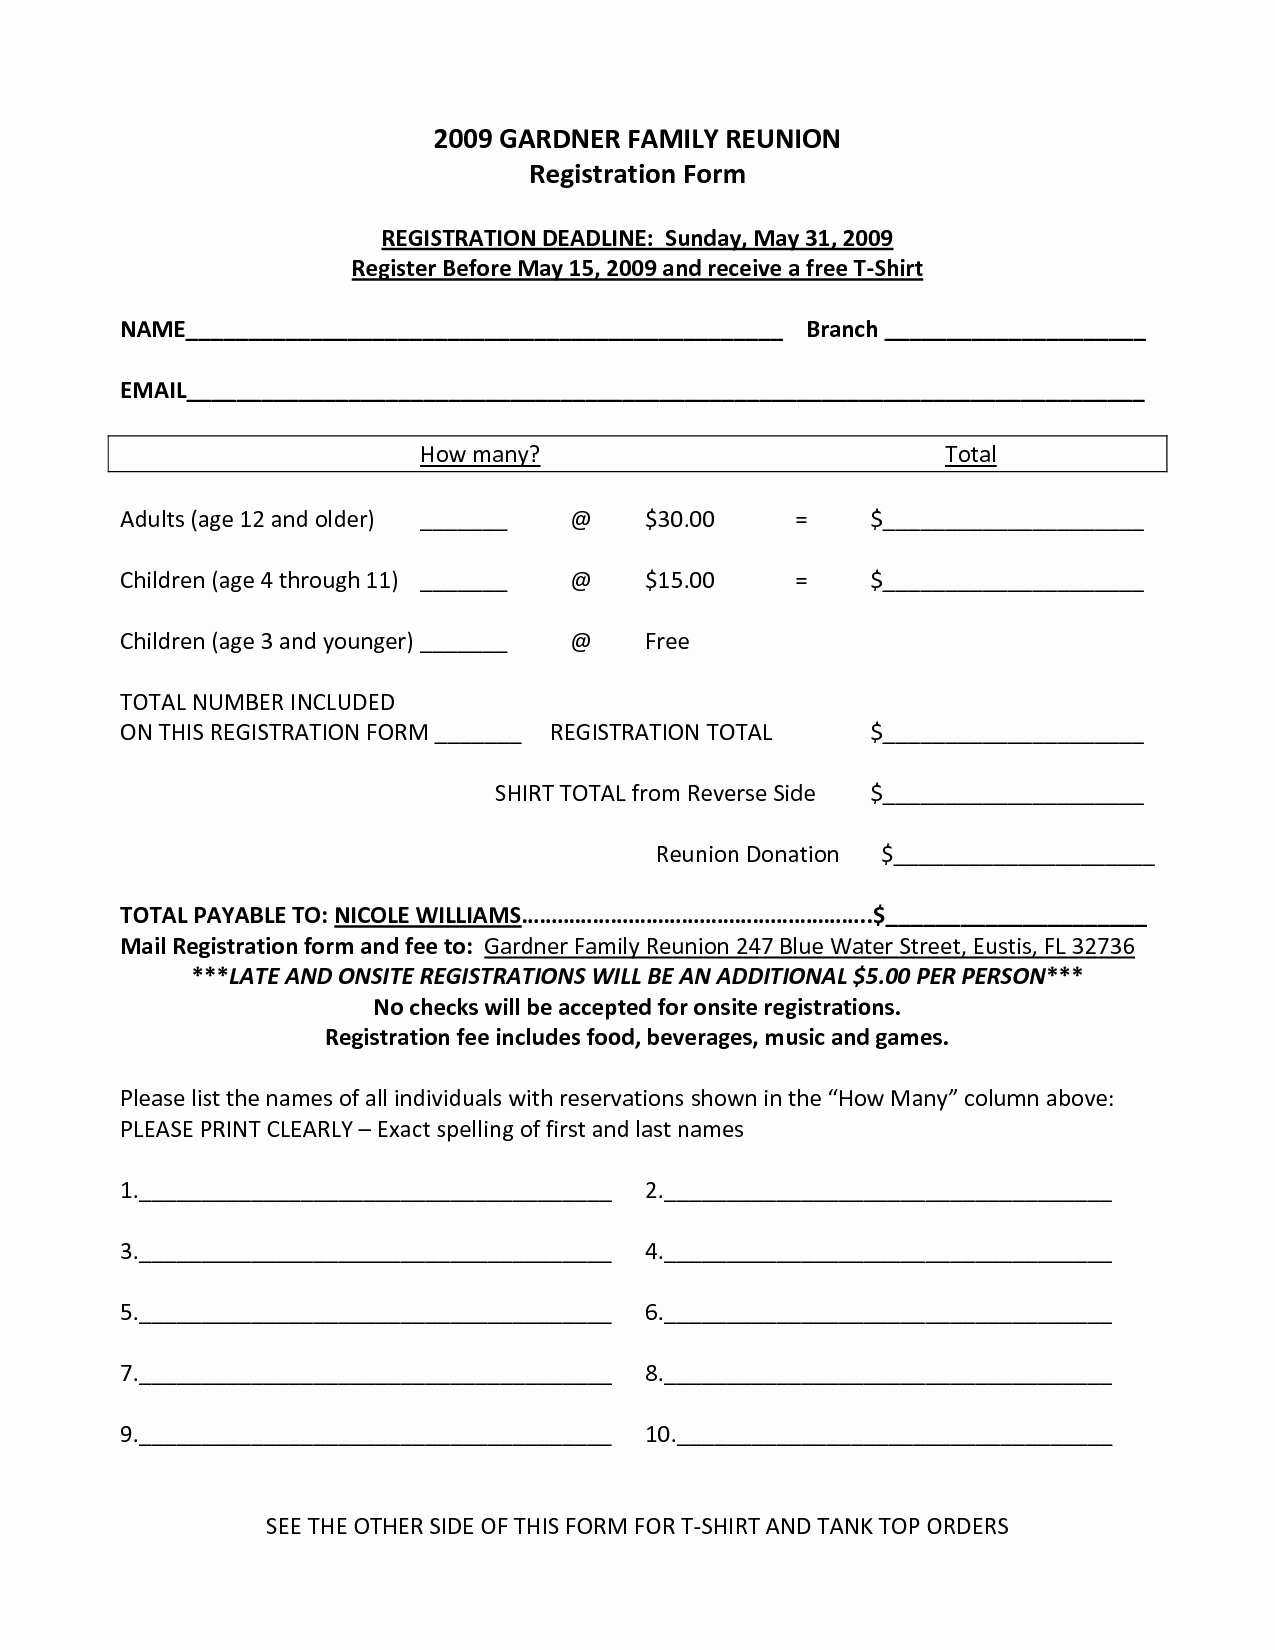 Family Reunion Agenda Template New Family Reunion Registration form Template …